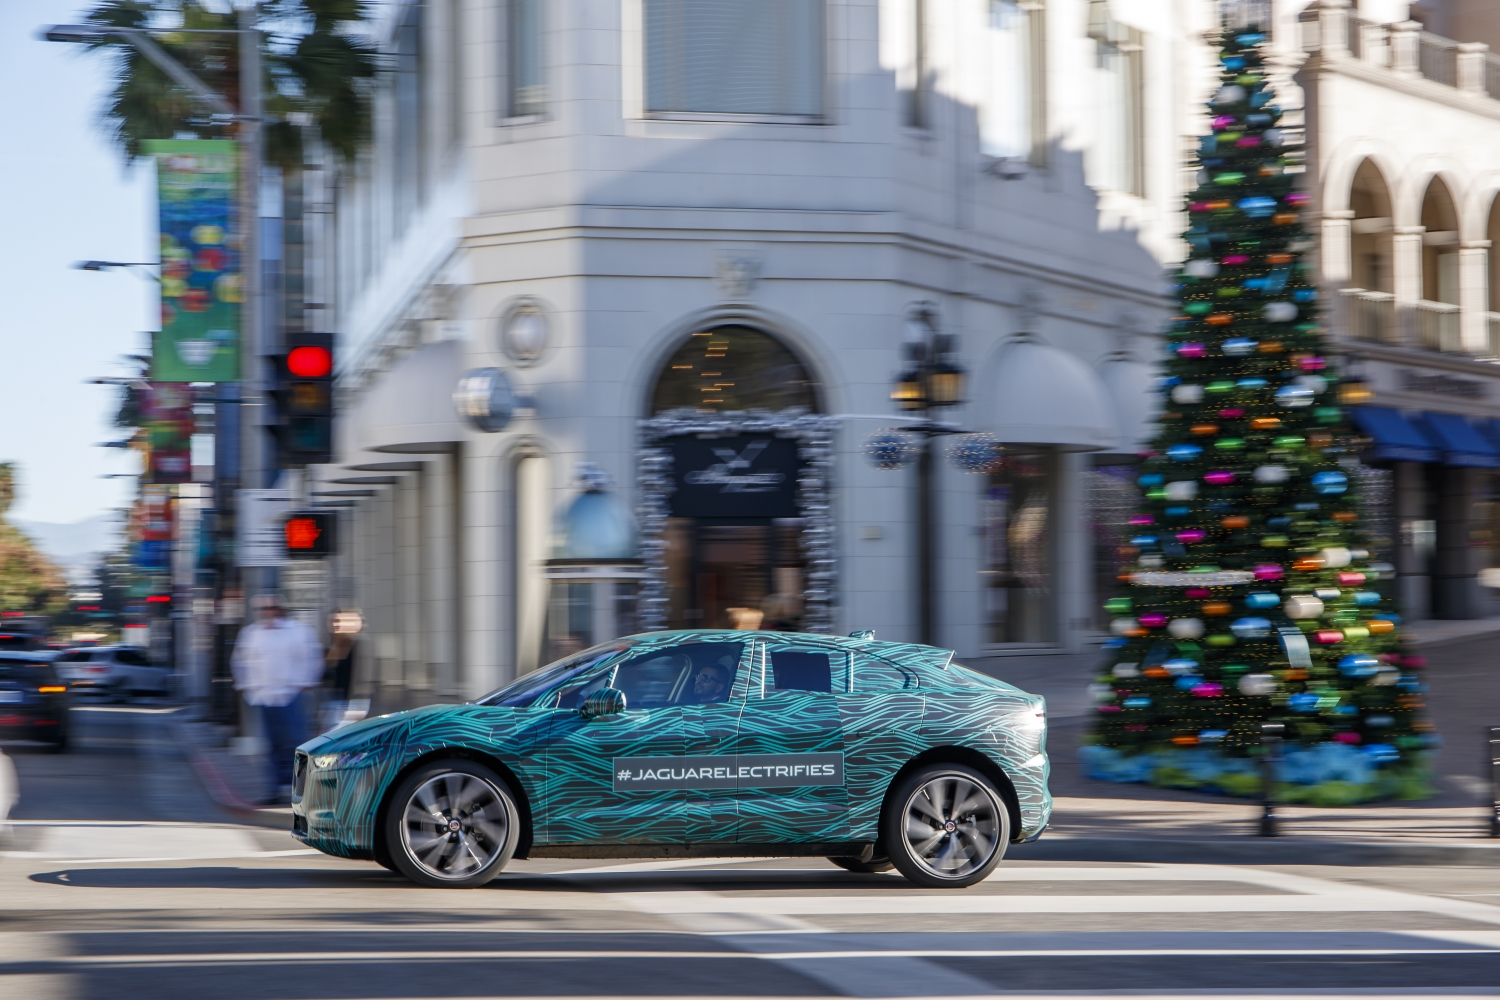 One year on from showing the I-PACE Concept at the LA Auto Show, Jaguar is back in town with a production prototype for final range and durability tests ahead of its official global reveal in 2018